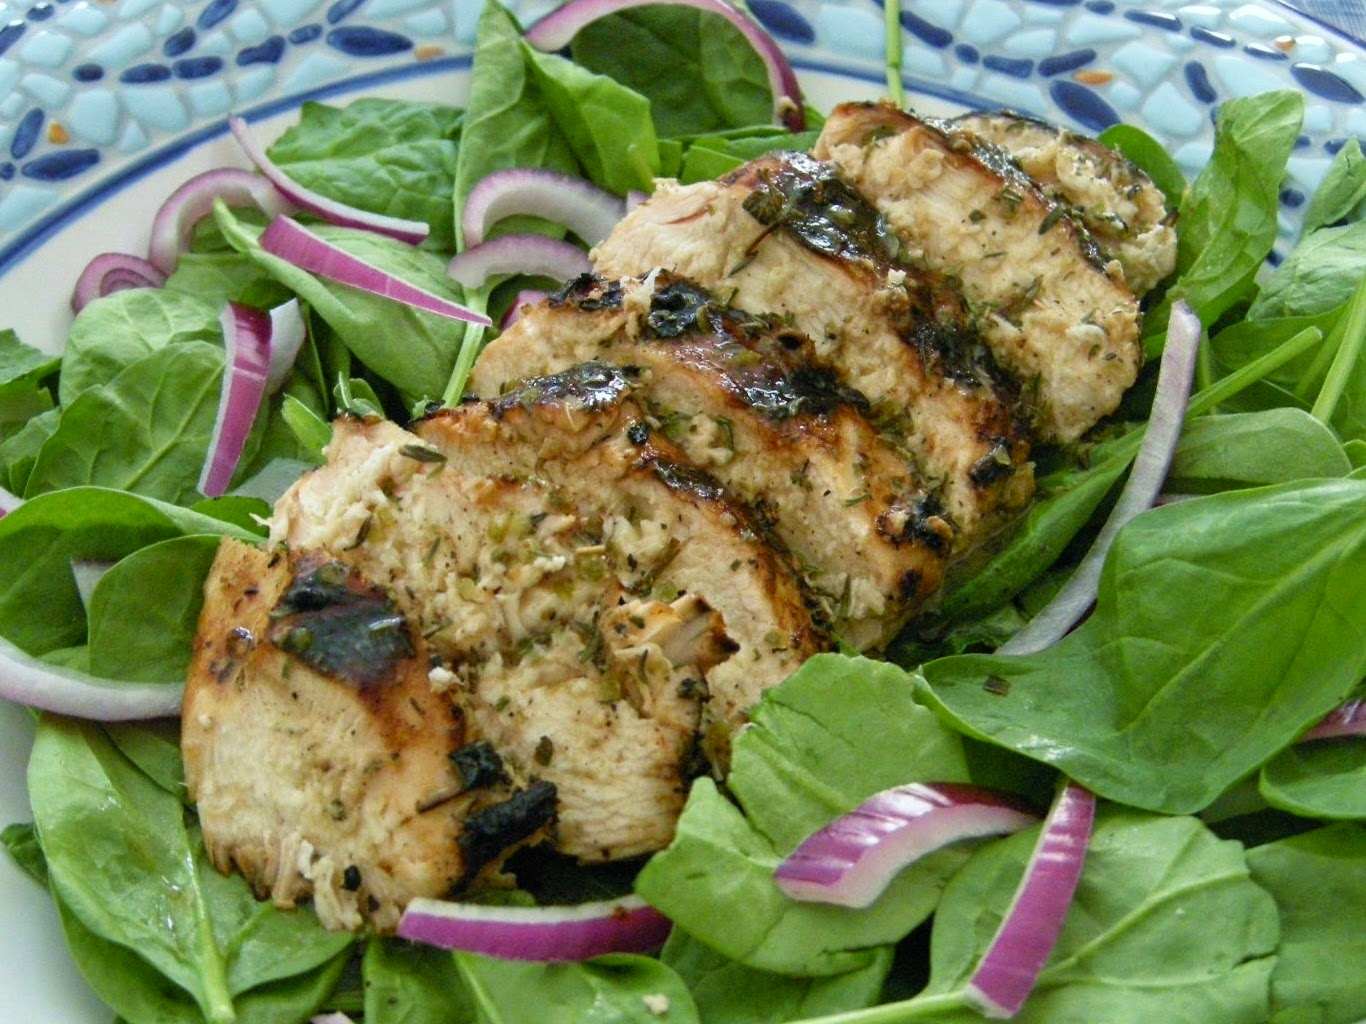 exported from mastercook buttermilk brined chicken breast salad 2 cups